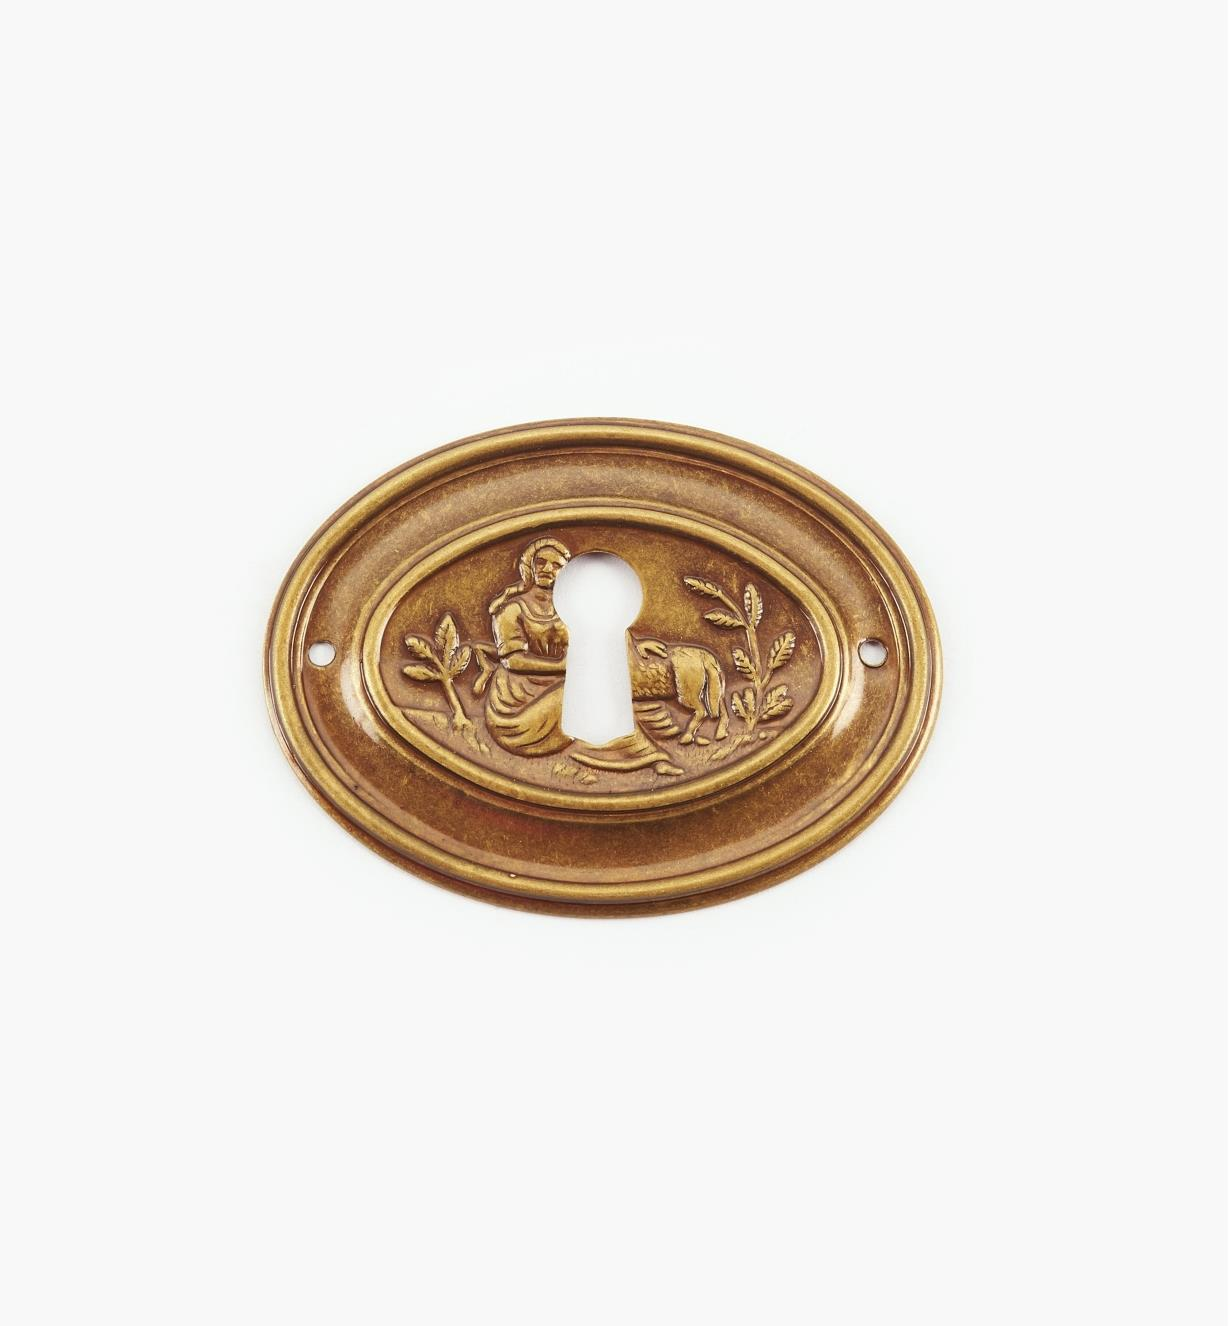 01A4203 - Small Lamb Escutcheon